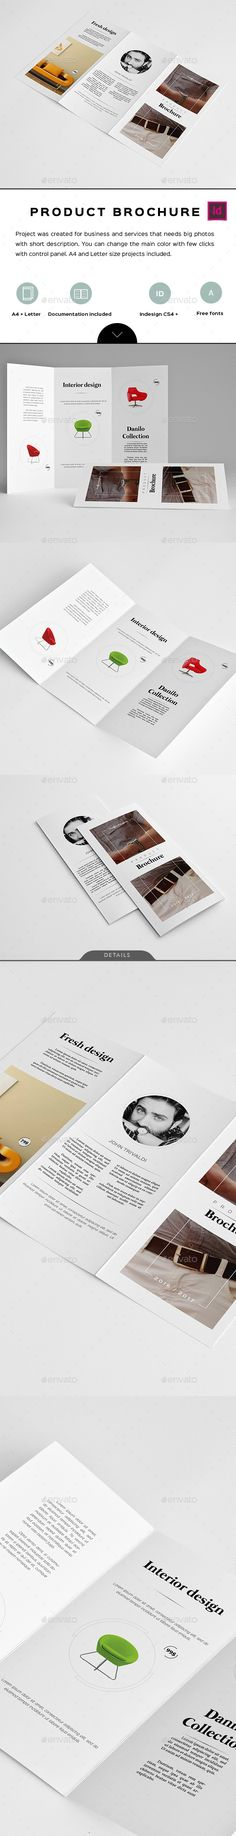 Product Trifold Brochure by Comforto  A4   Letter size, Compatible with Adobe Indesign CS4, CS5, CS5.5, CS6, CC Paragraph and Character Styles Aligned to a 6 Column Gr